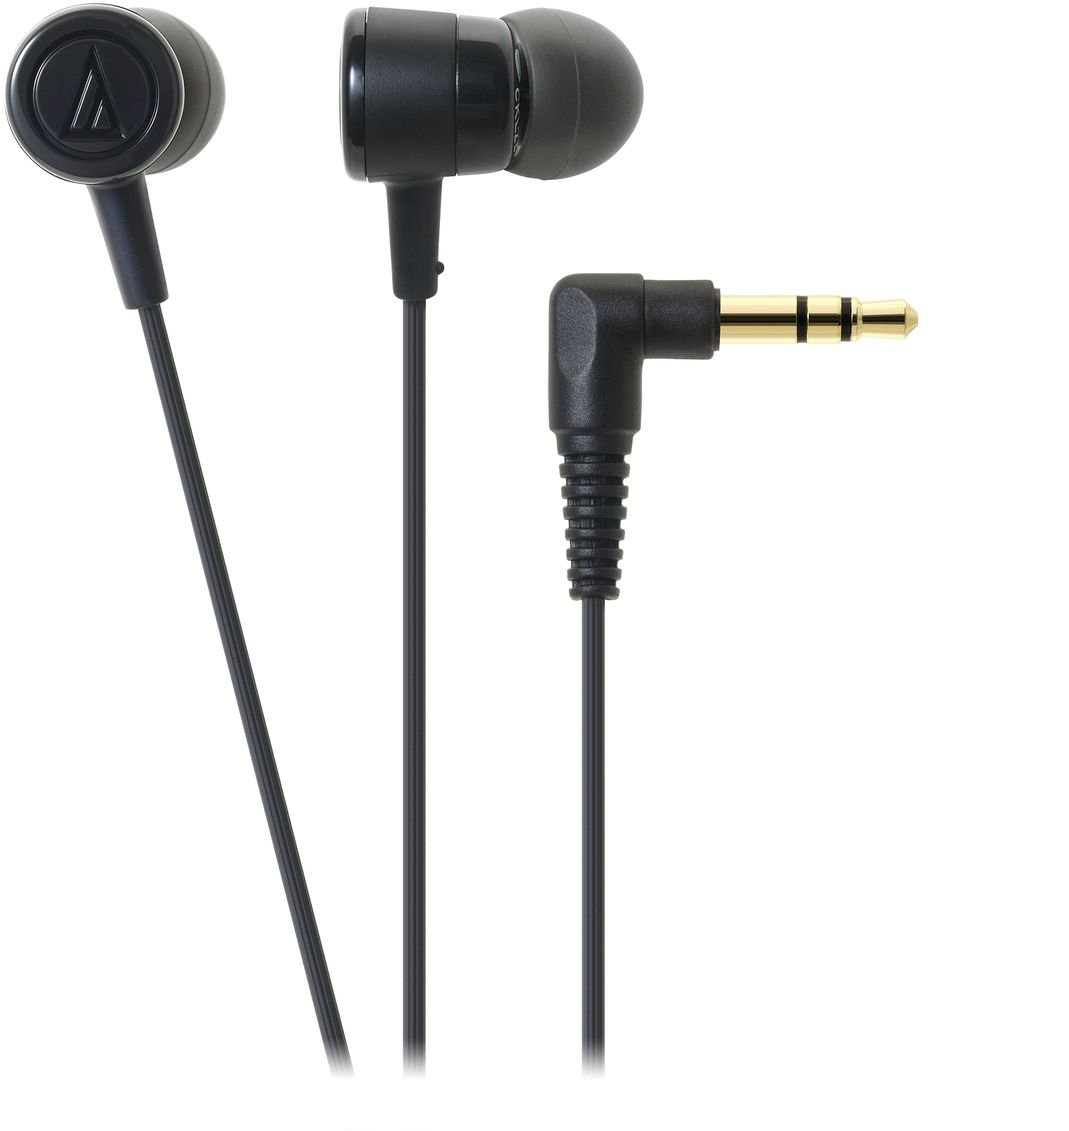 Audio-Technica ATH-CKL220, Black наушники наушники audio technica ath ckl220 black